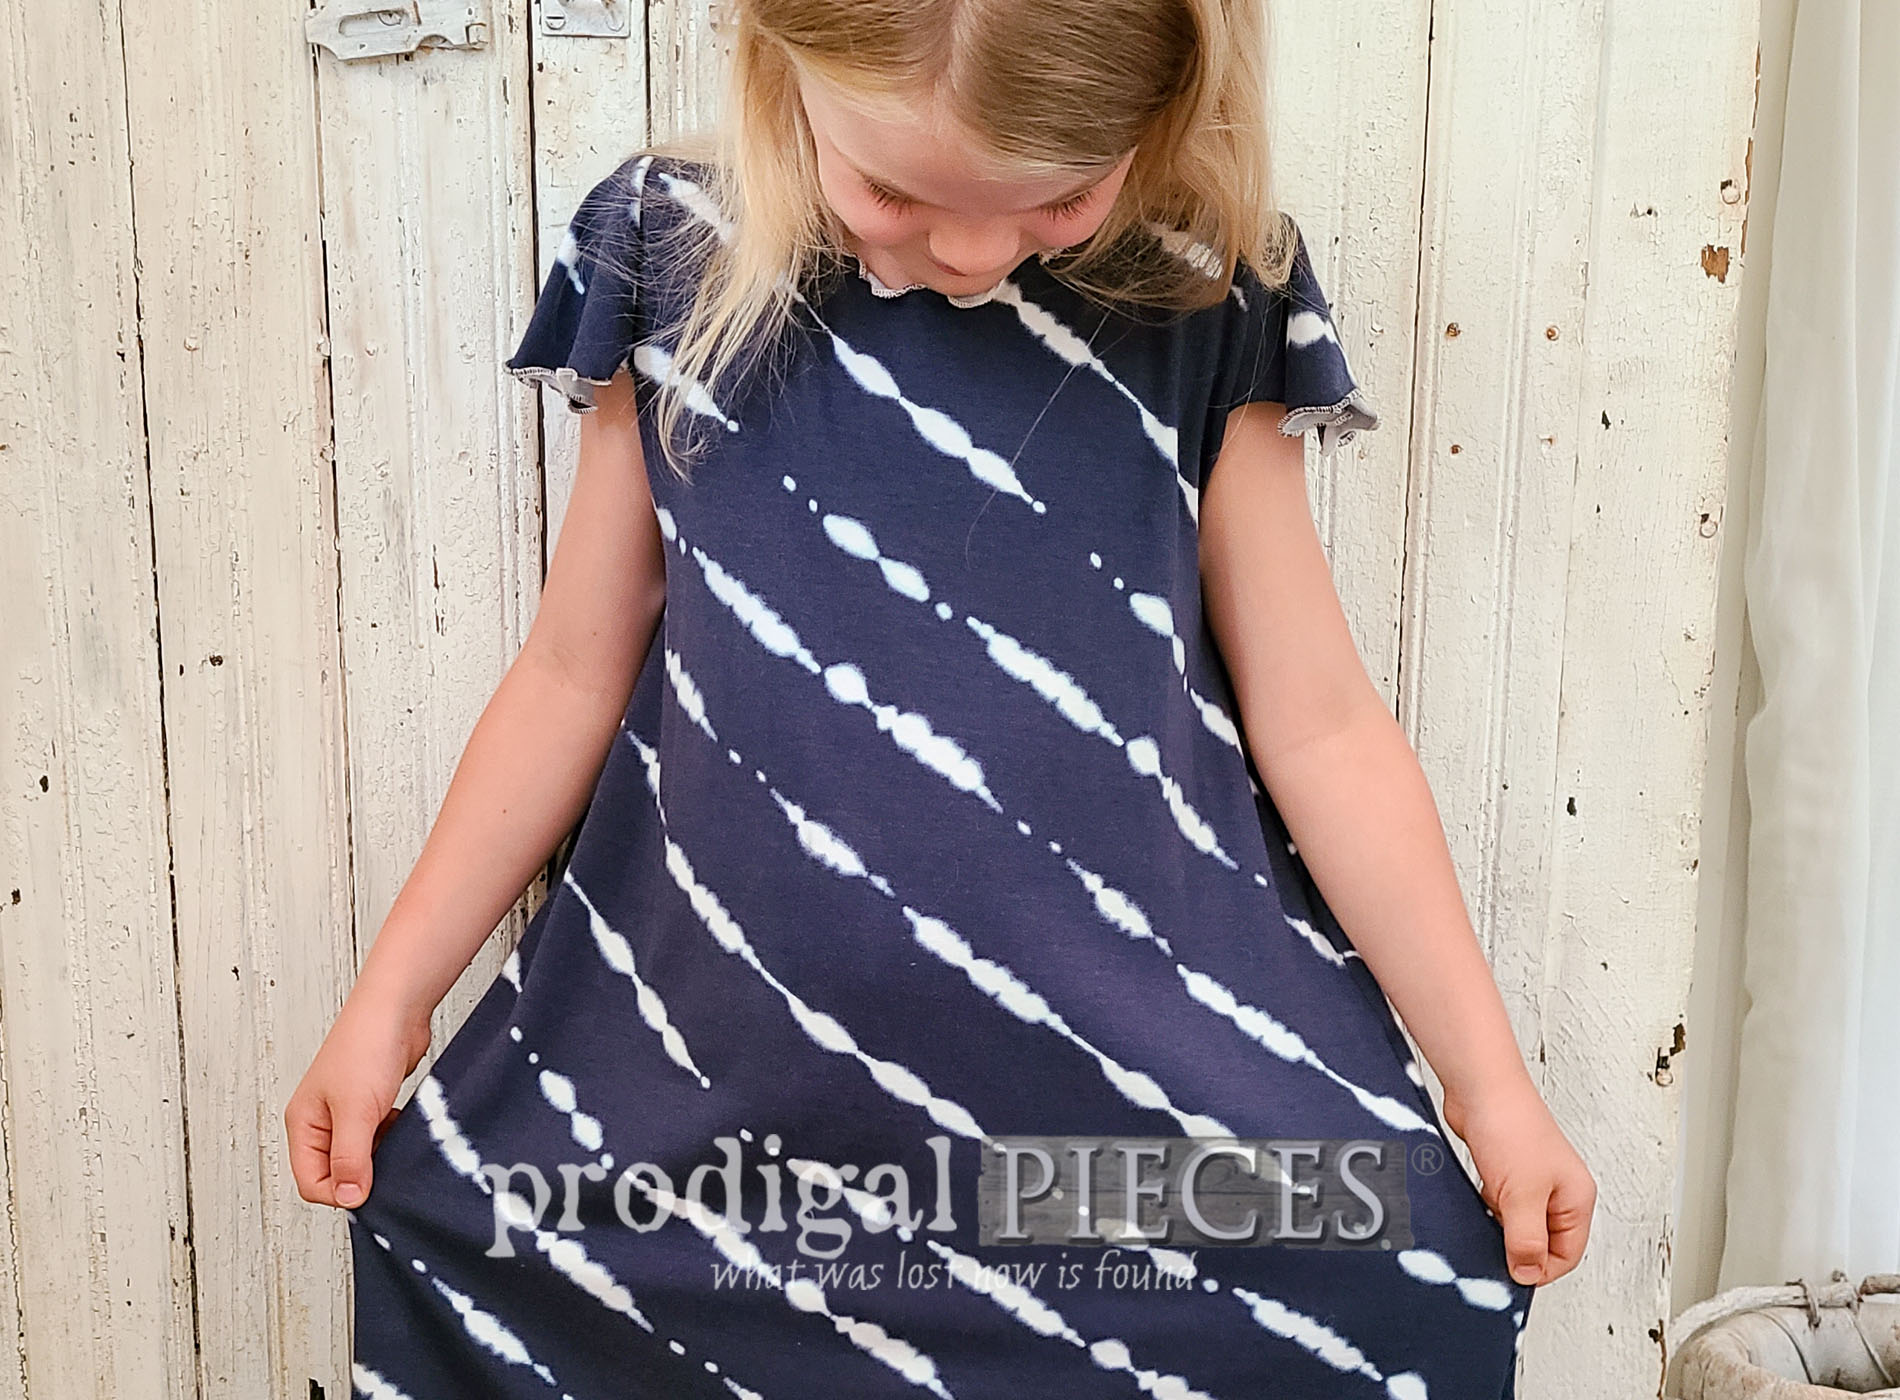 Featured Upcycled Skirt into Nightgowns, Shirts, and Dresses by Larissa of Prodigal Pieces | prodigalpieces.com #prodigalpieces #sewing #fashion #upcycle #refashion #diy #kids #clothing